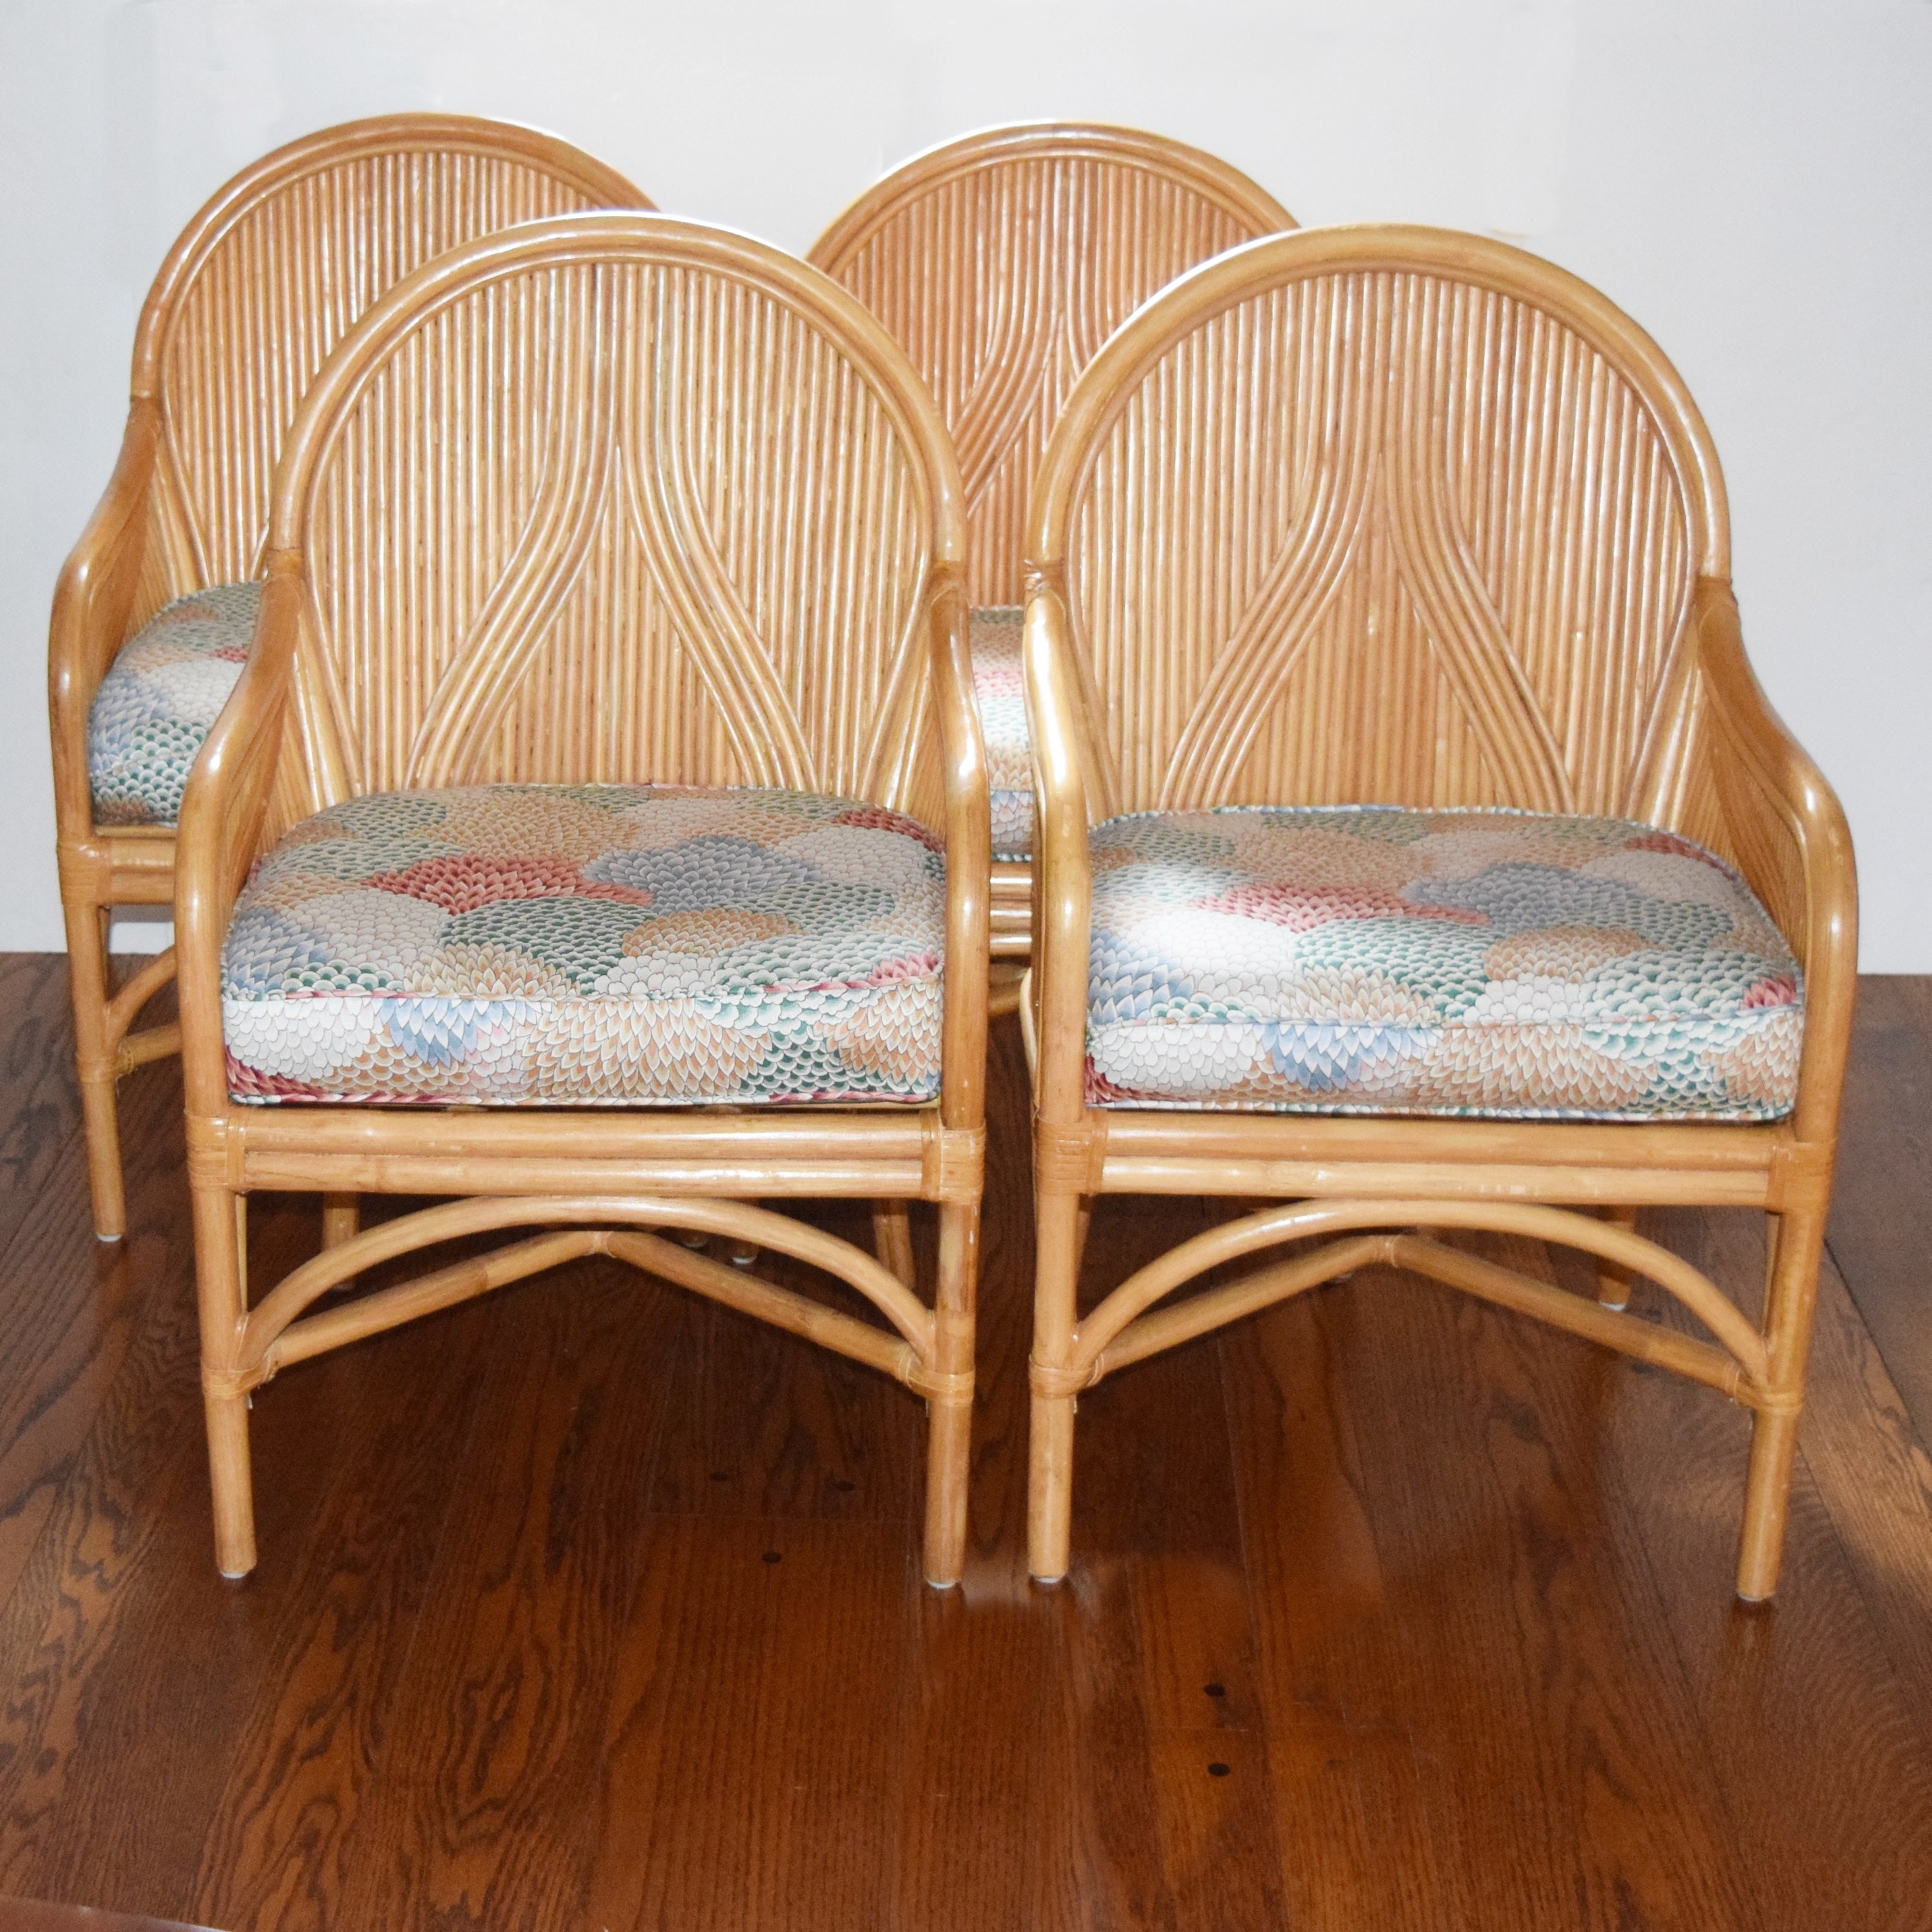 Four Blonde Bentwood and Rattan Club Chairs